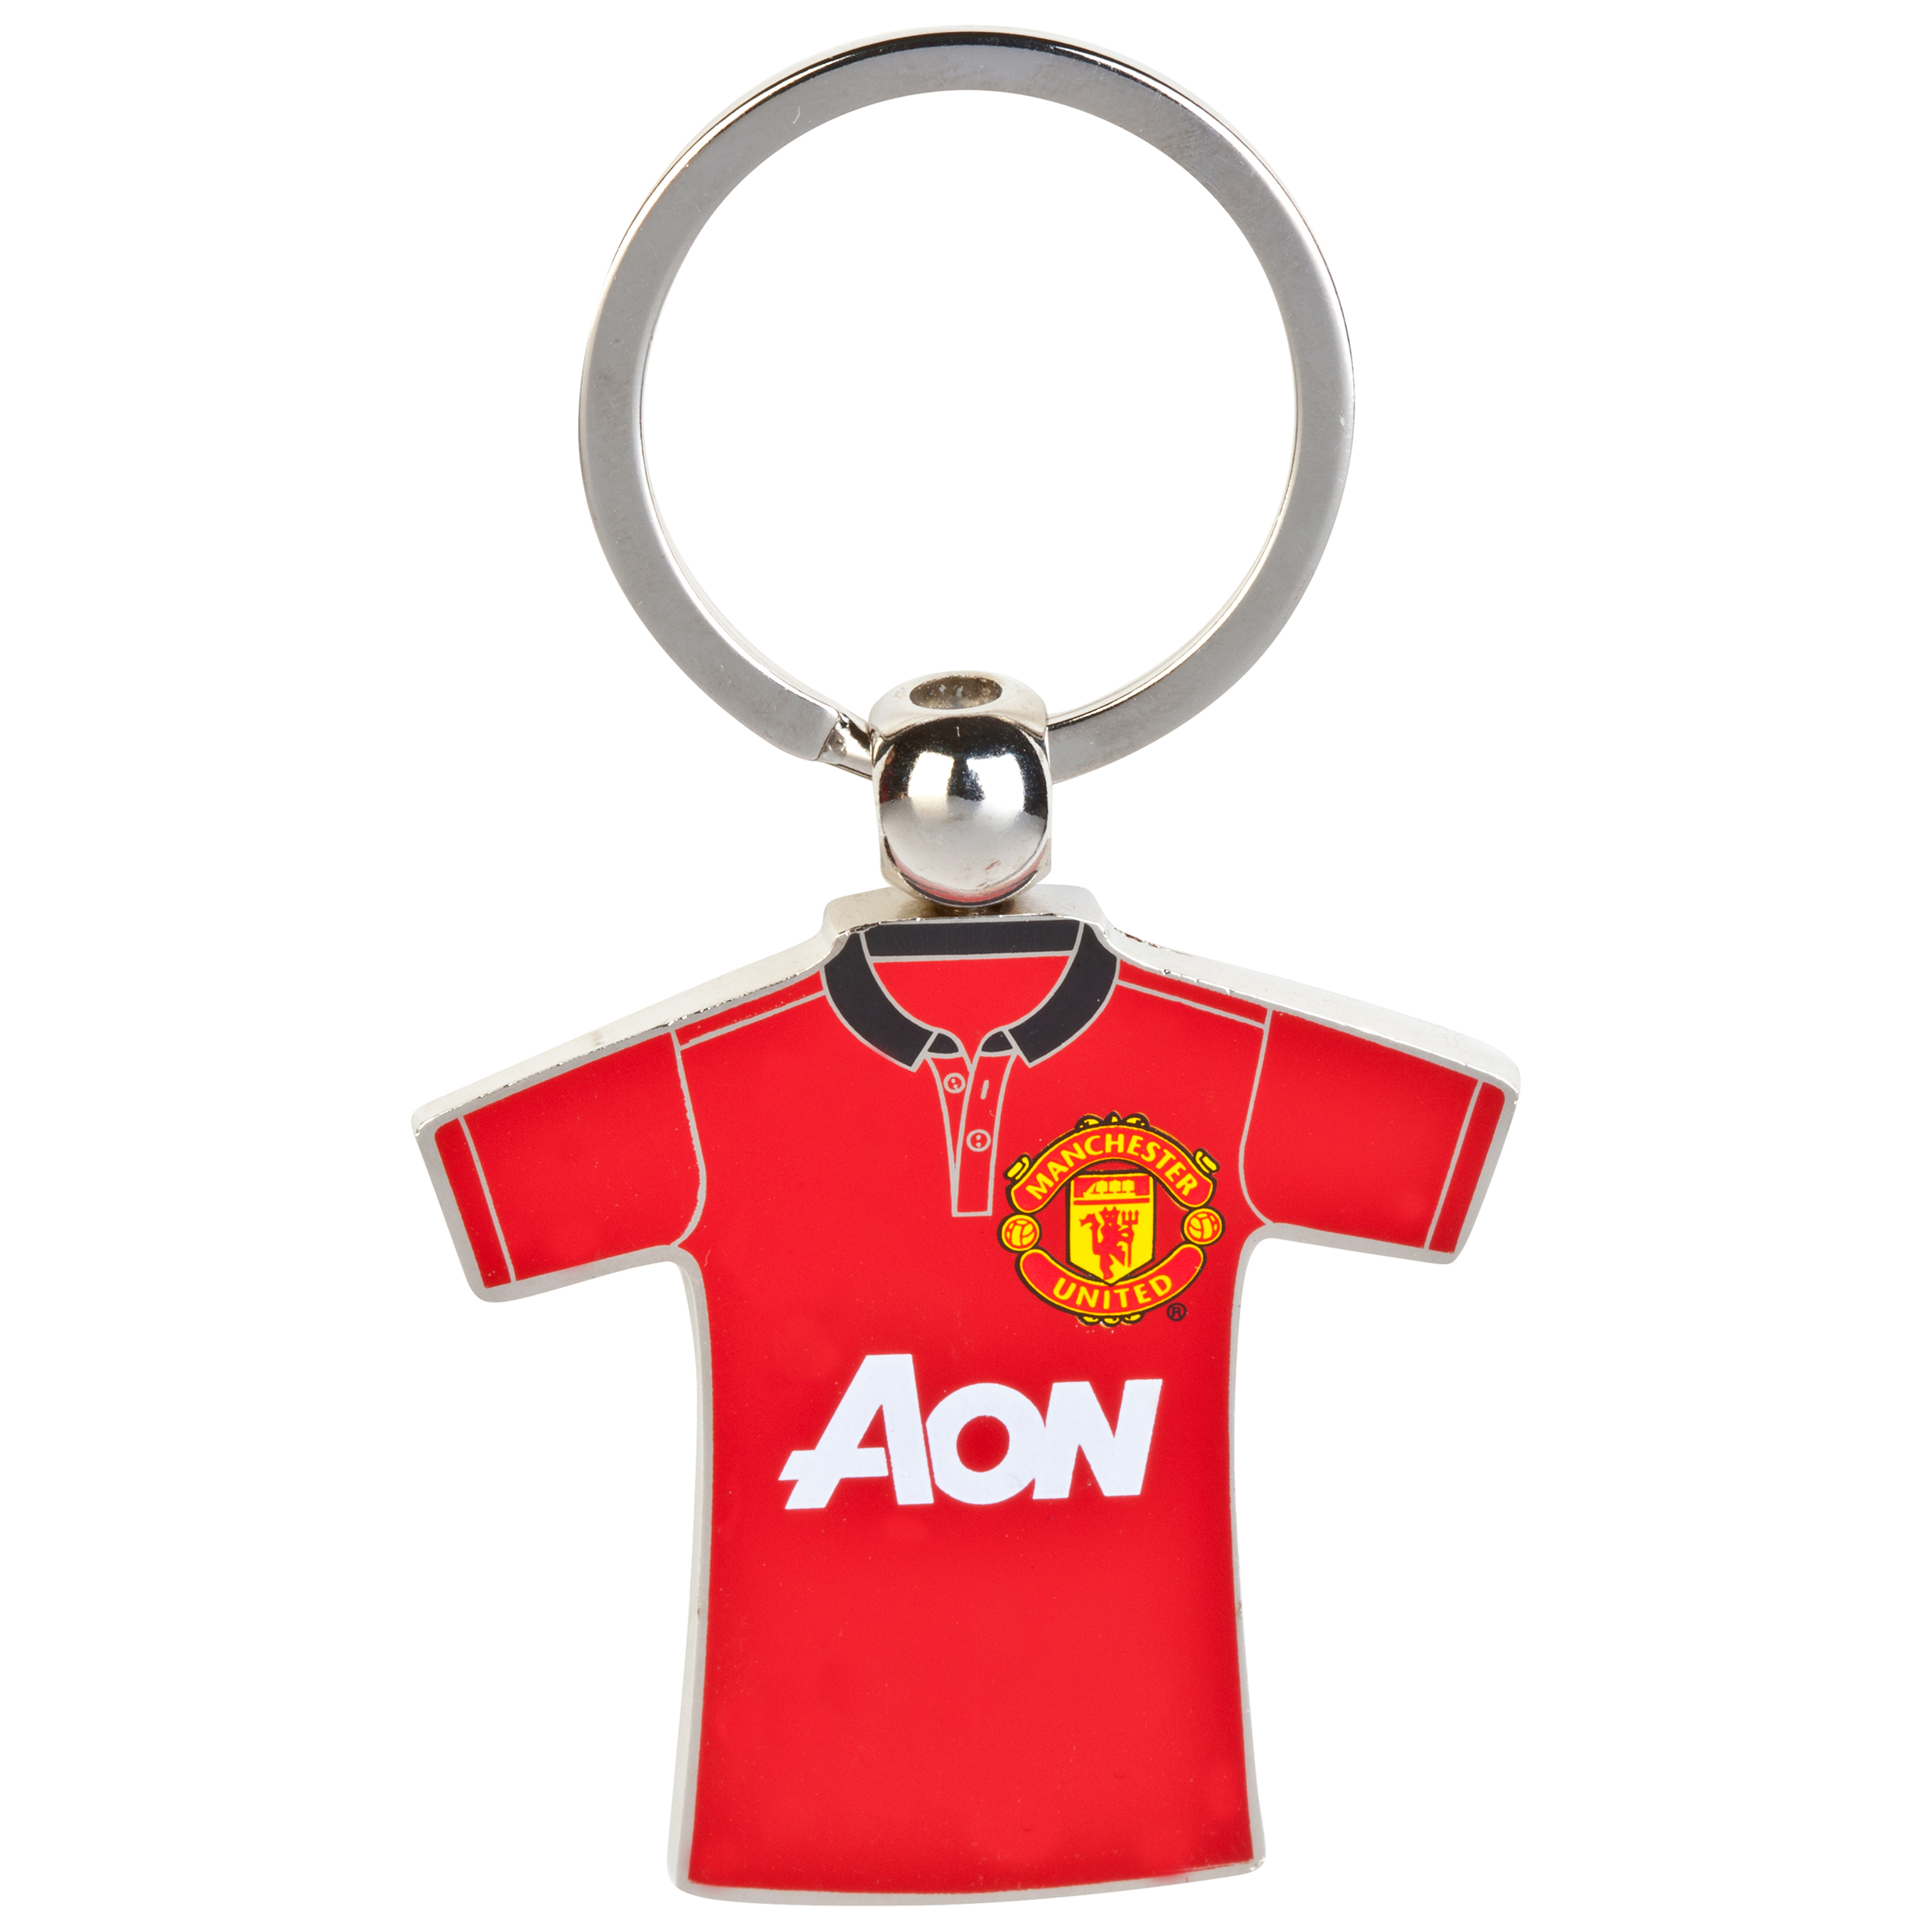 Manchester United 2013-14 Kit Key Ring